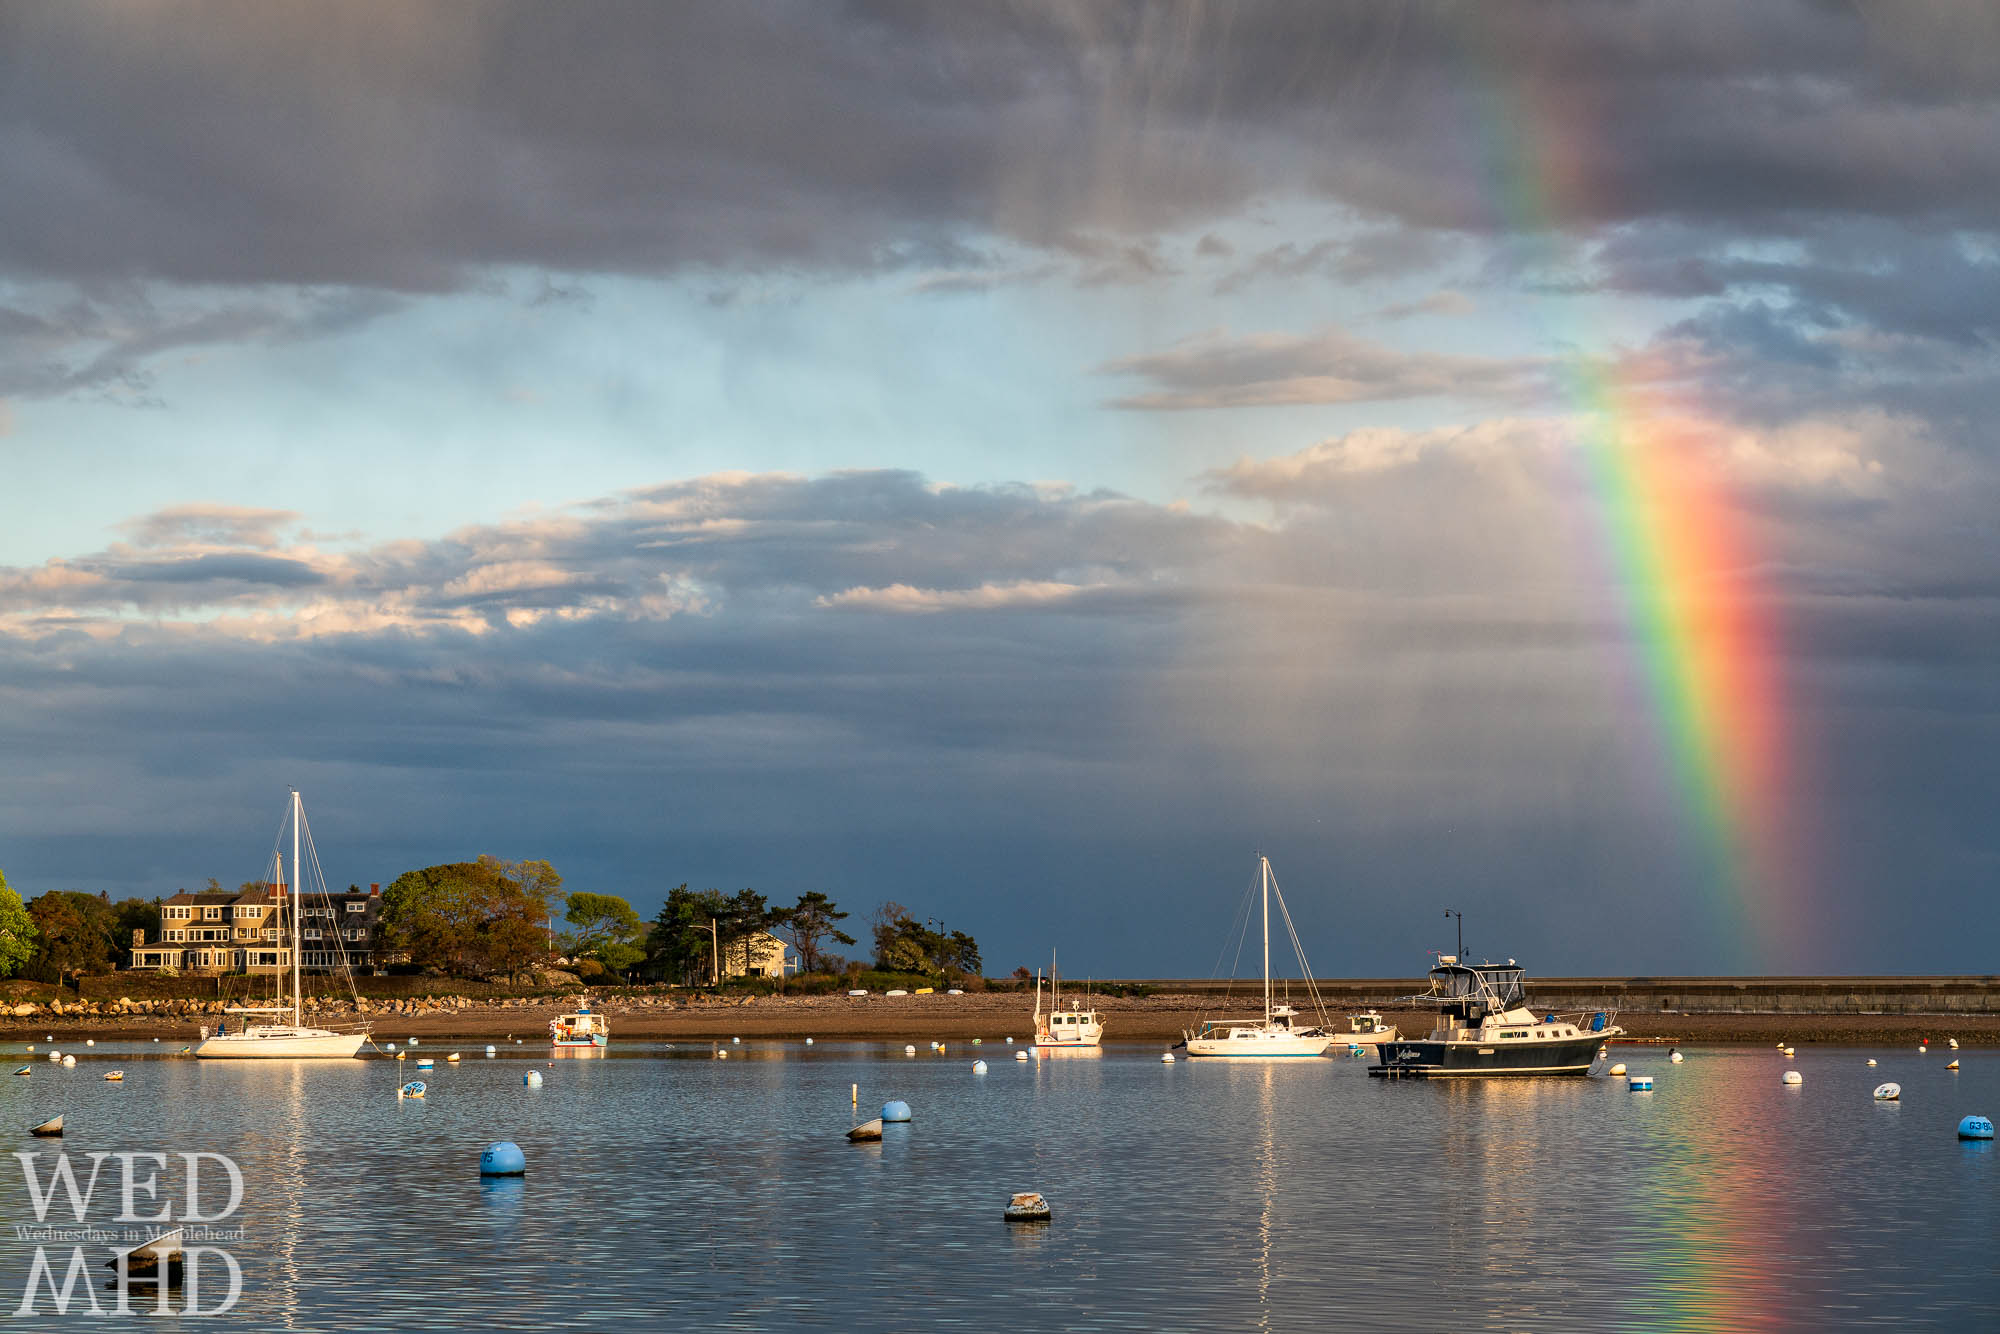 Late spring seems to hold the perfect conditions for rainbow weather as on this mid-May evening looking towards the causeway from Commercial Street